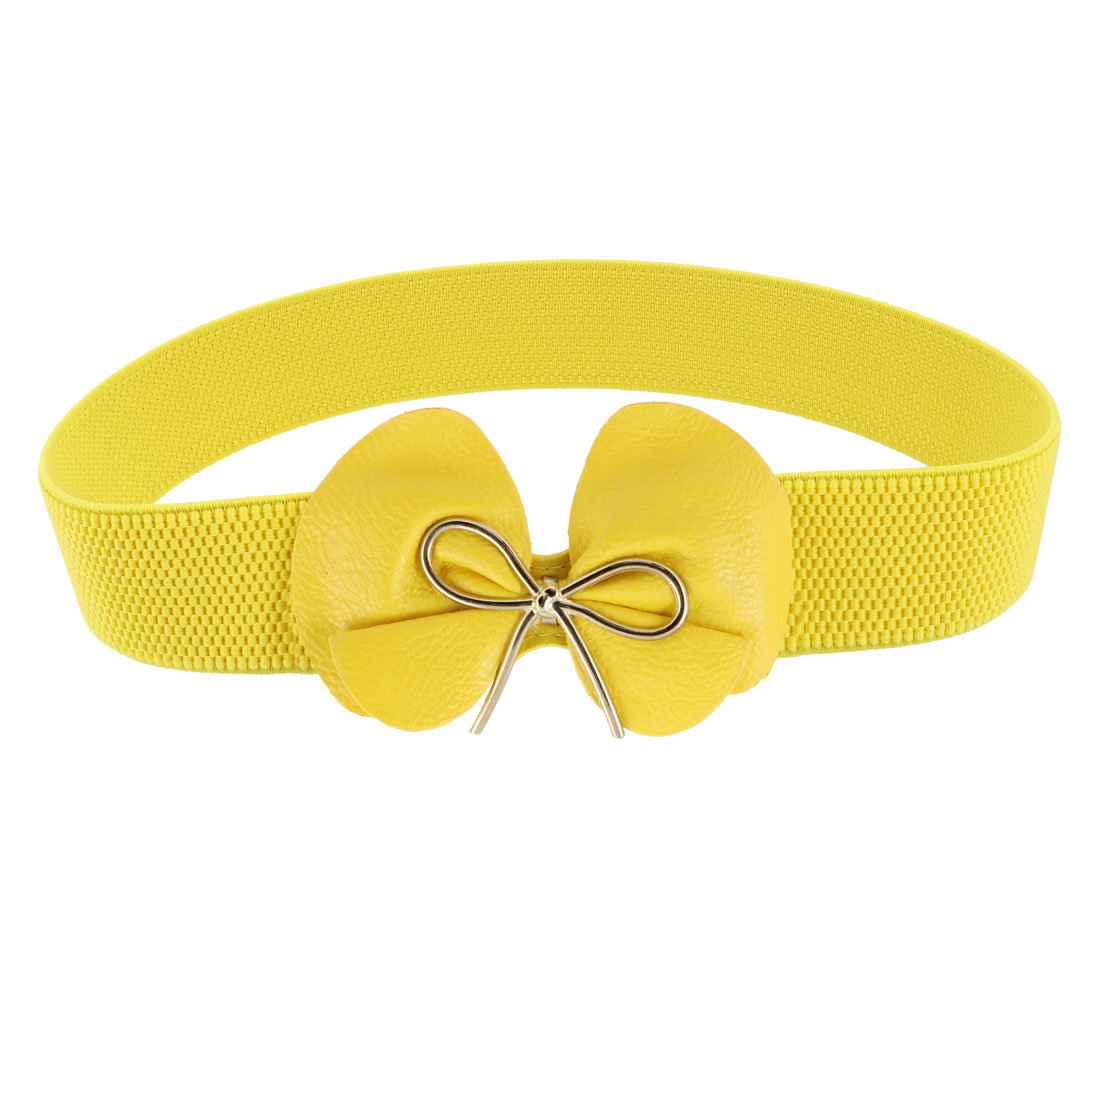 Ladies Metal Bow Tie Press Stud Buckle Stretchy Cinch Narrow Waist Belt Yellow